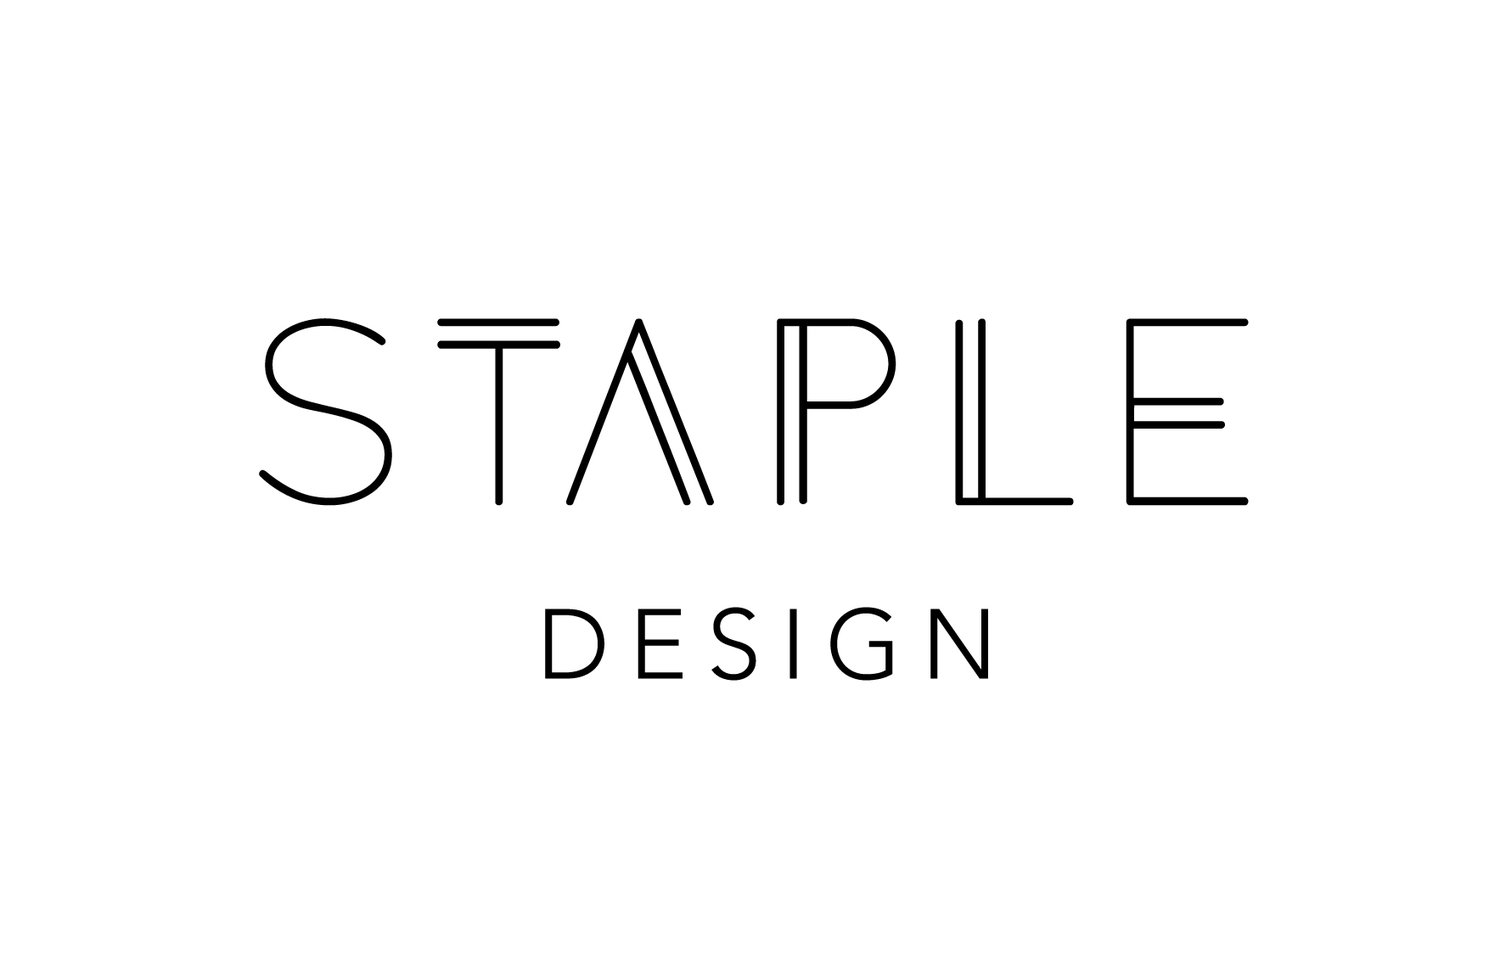 STAPLE DESIGN